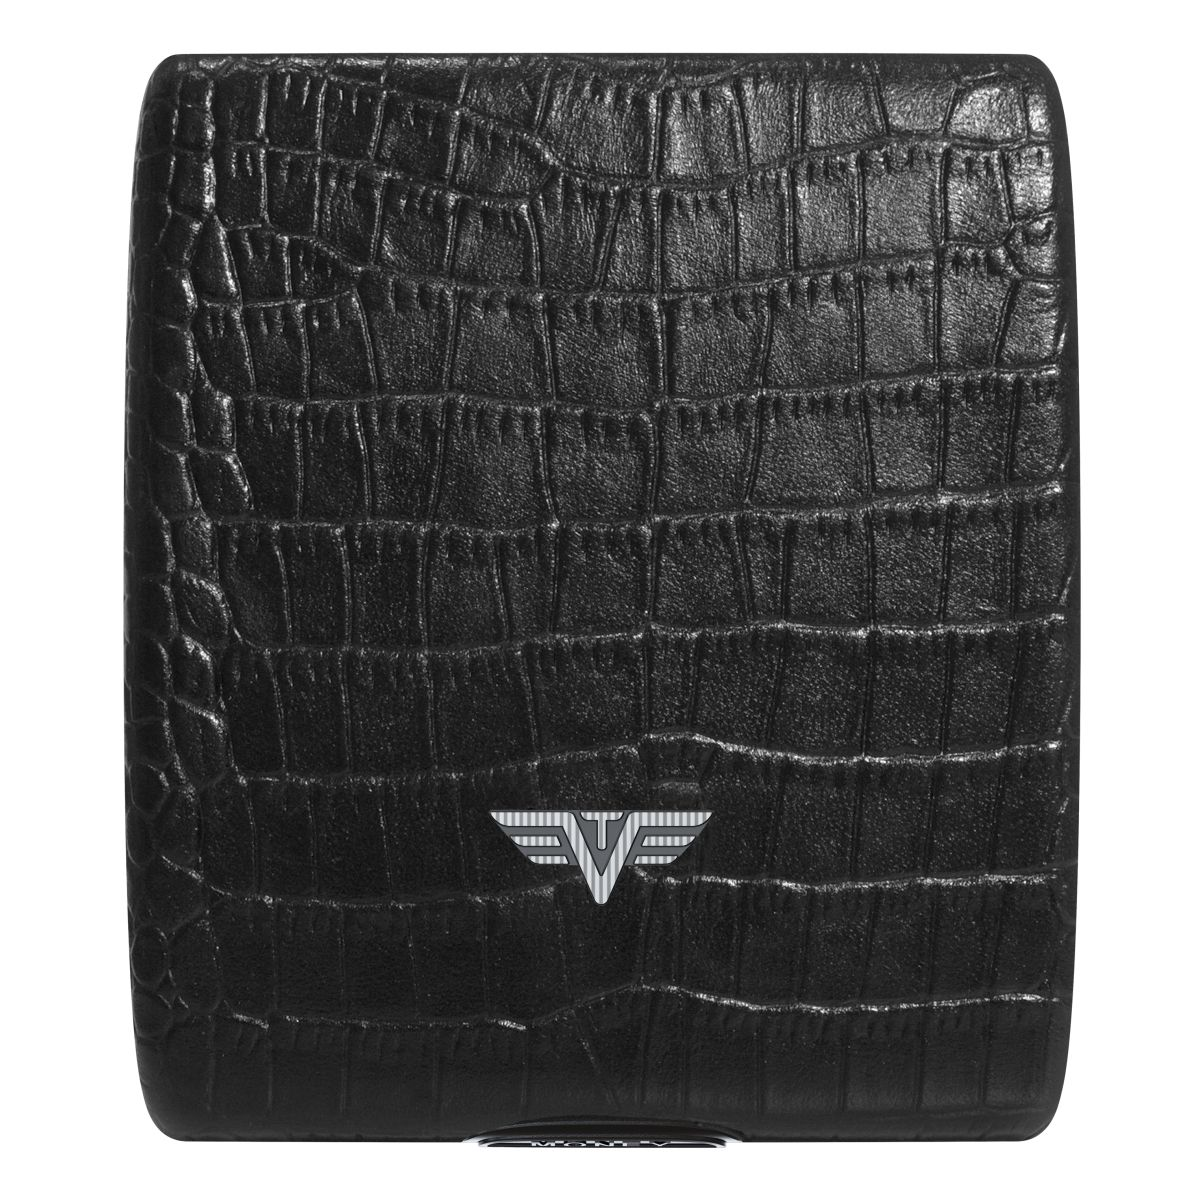 TRU VIRTU Aluminum Wallet Beluga - Money & Cards - Leather Line - Corco Black